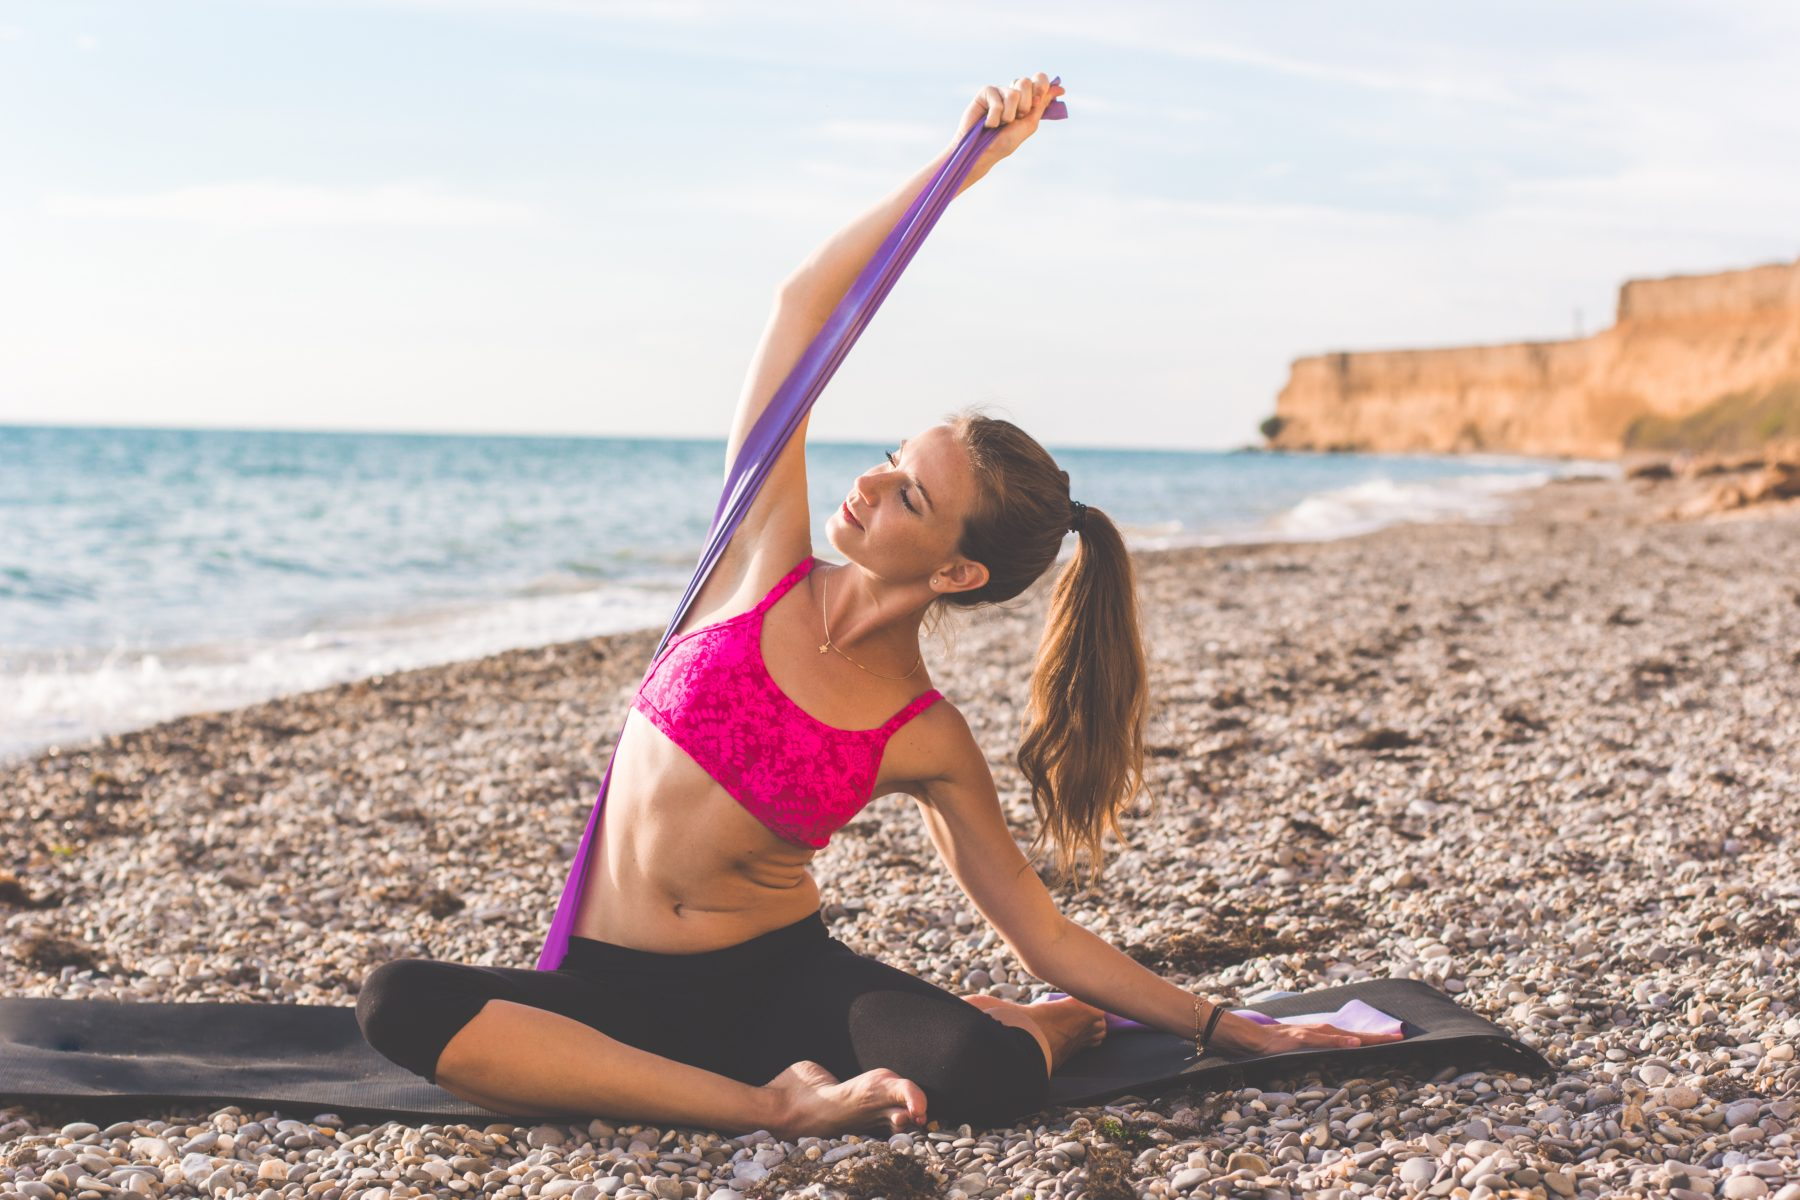 Stress Incontinence From An Active Lifestyle